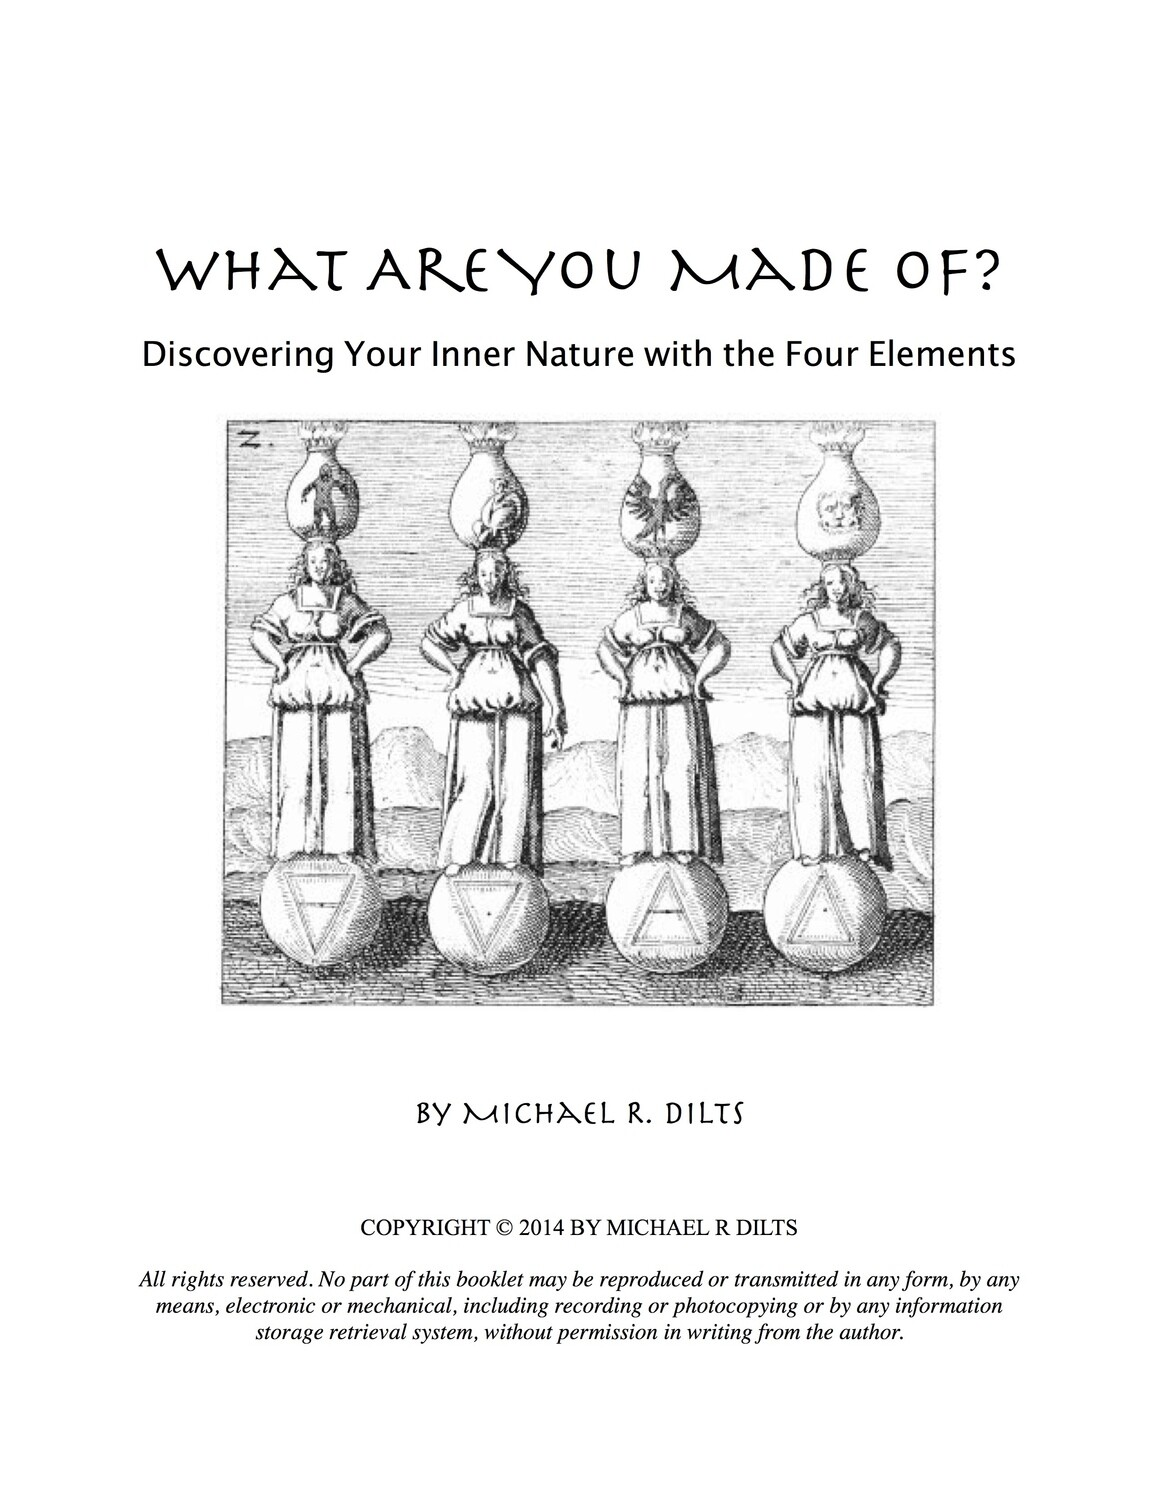 What Are You Made Of? - Discovering Your Inner Nature with the Four Elements [Booklet]